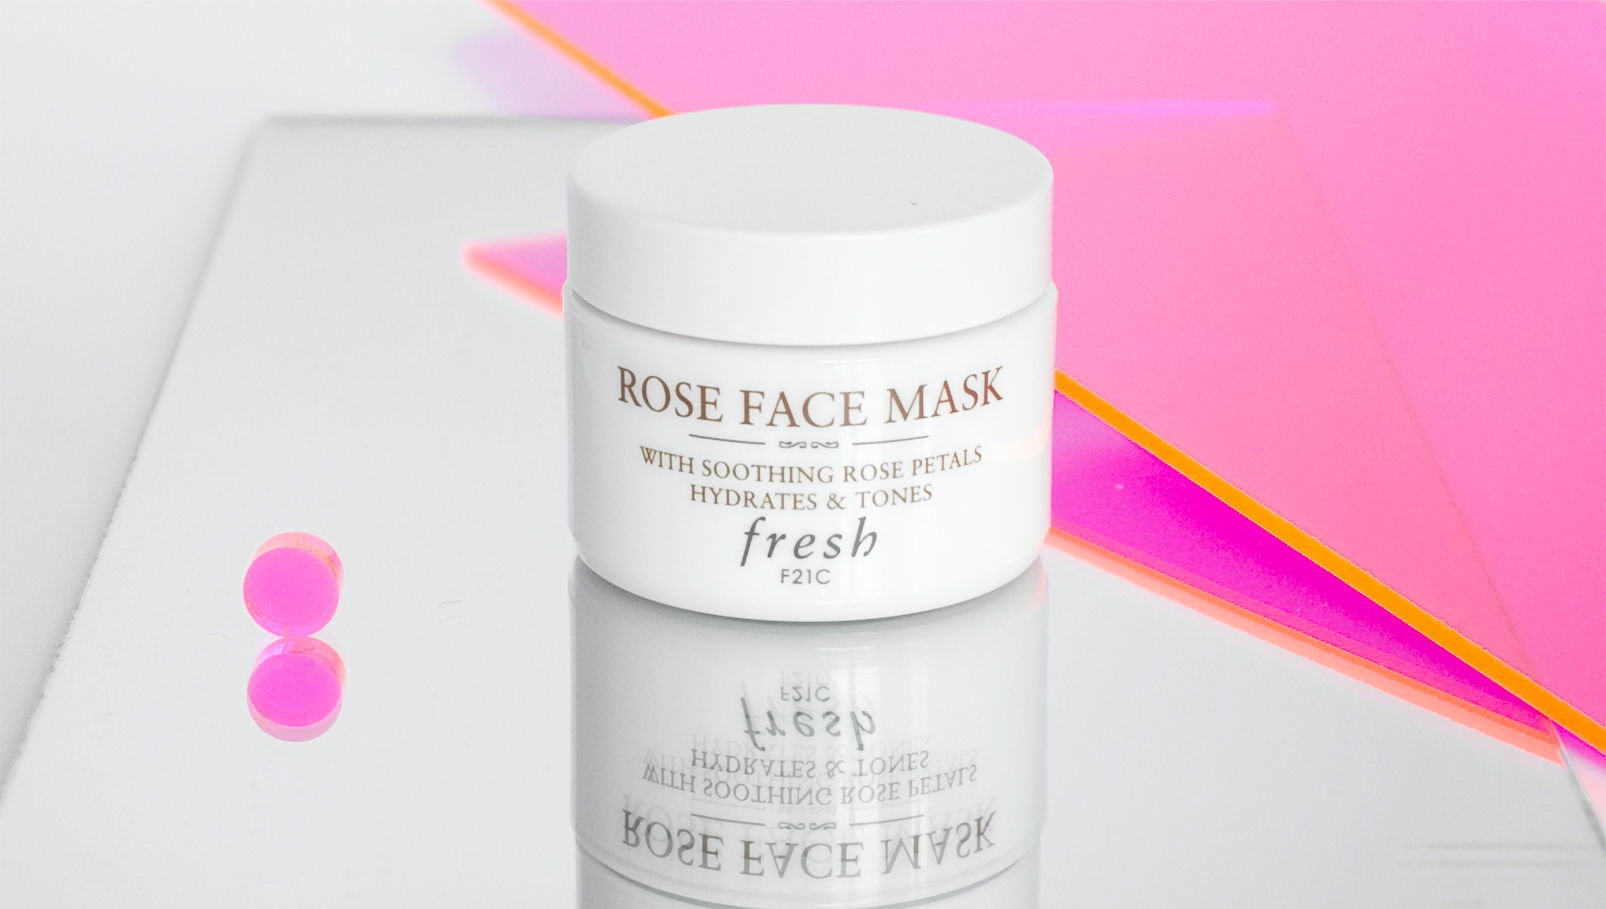 Rose Face Mask, $62